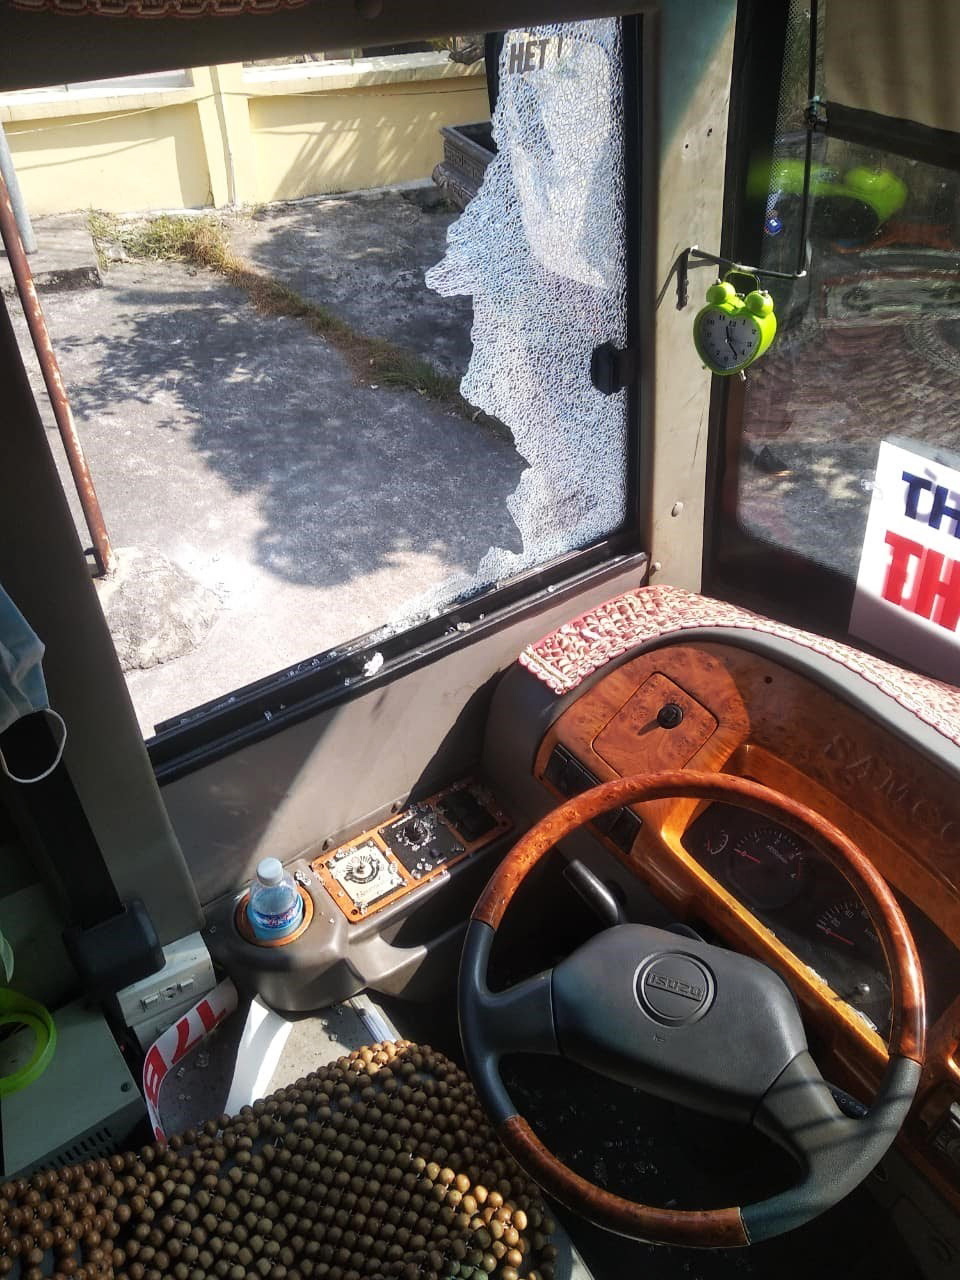 The window of the passenger bus driven by Nguyen Minh Lap is broken after the vehicle was attacked with rocks in this supplied photo.